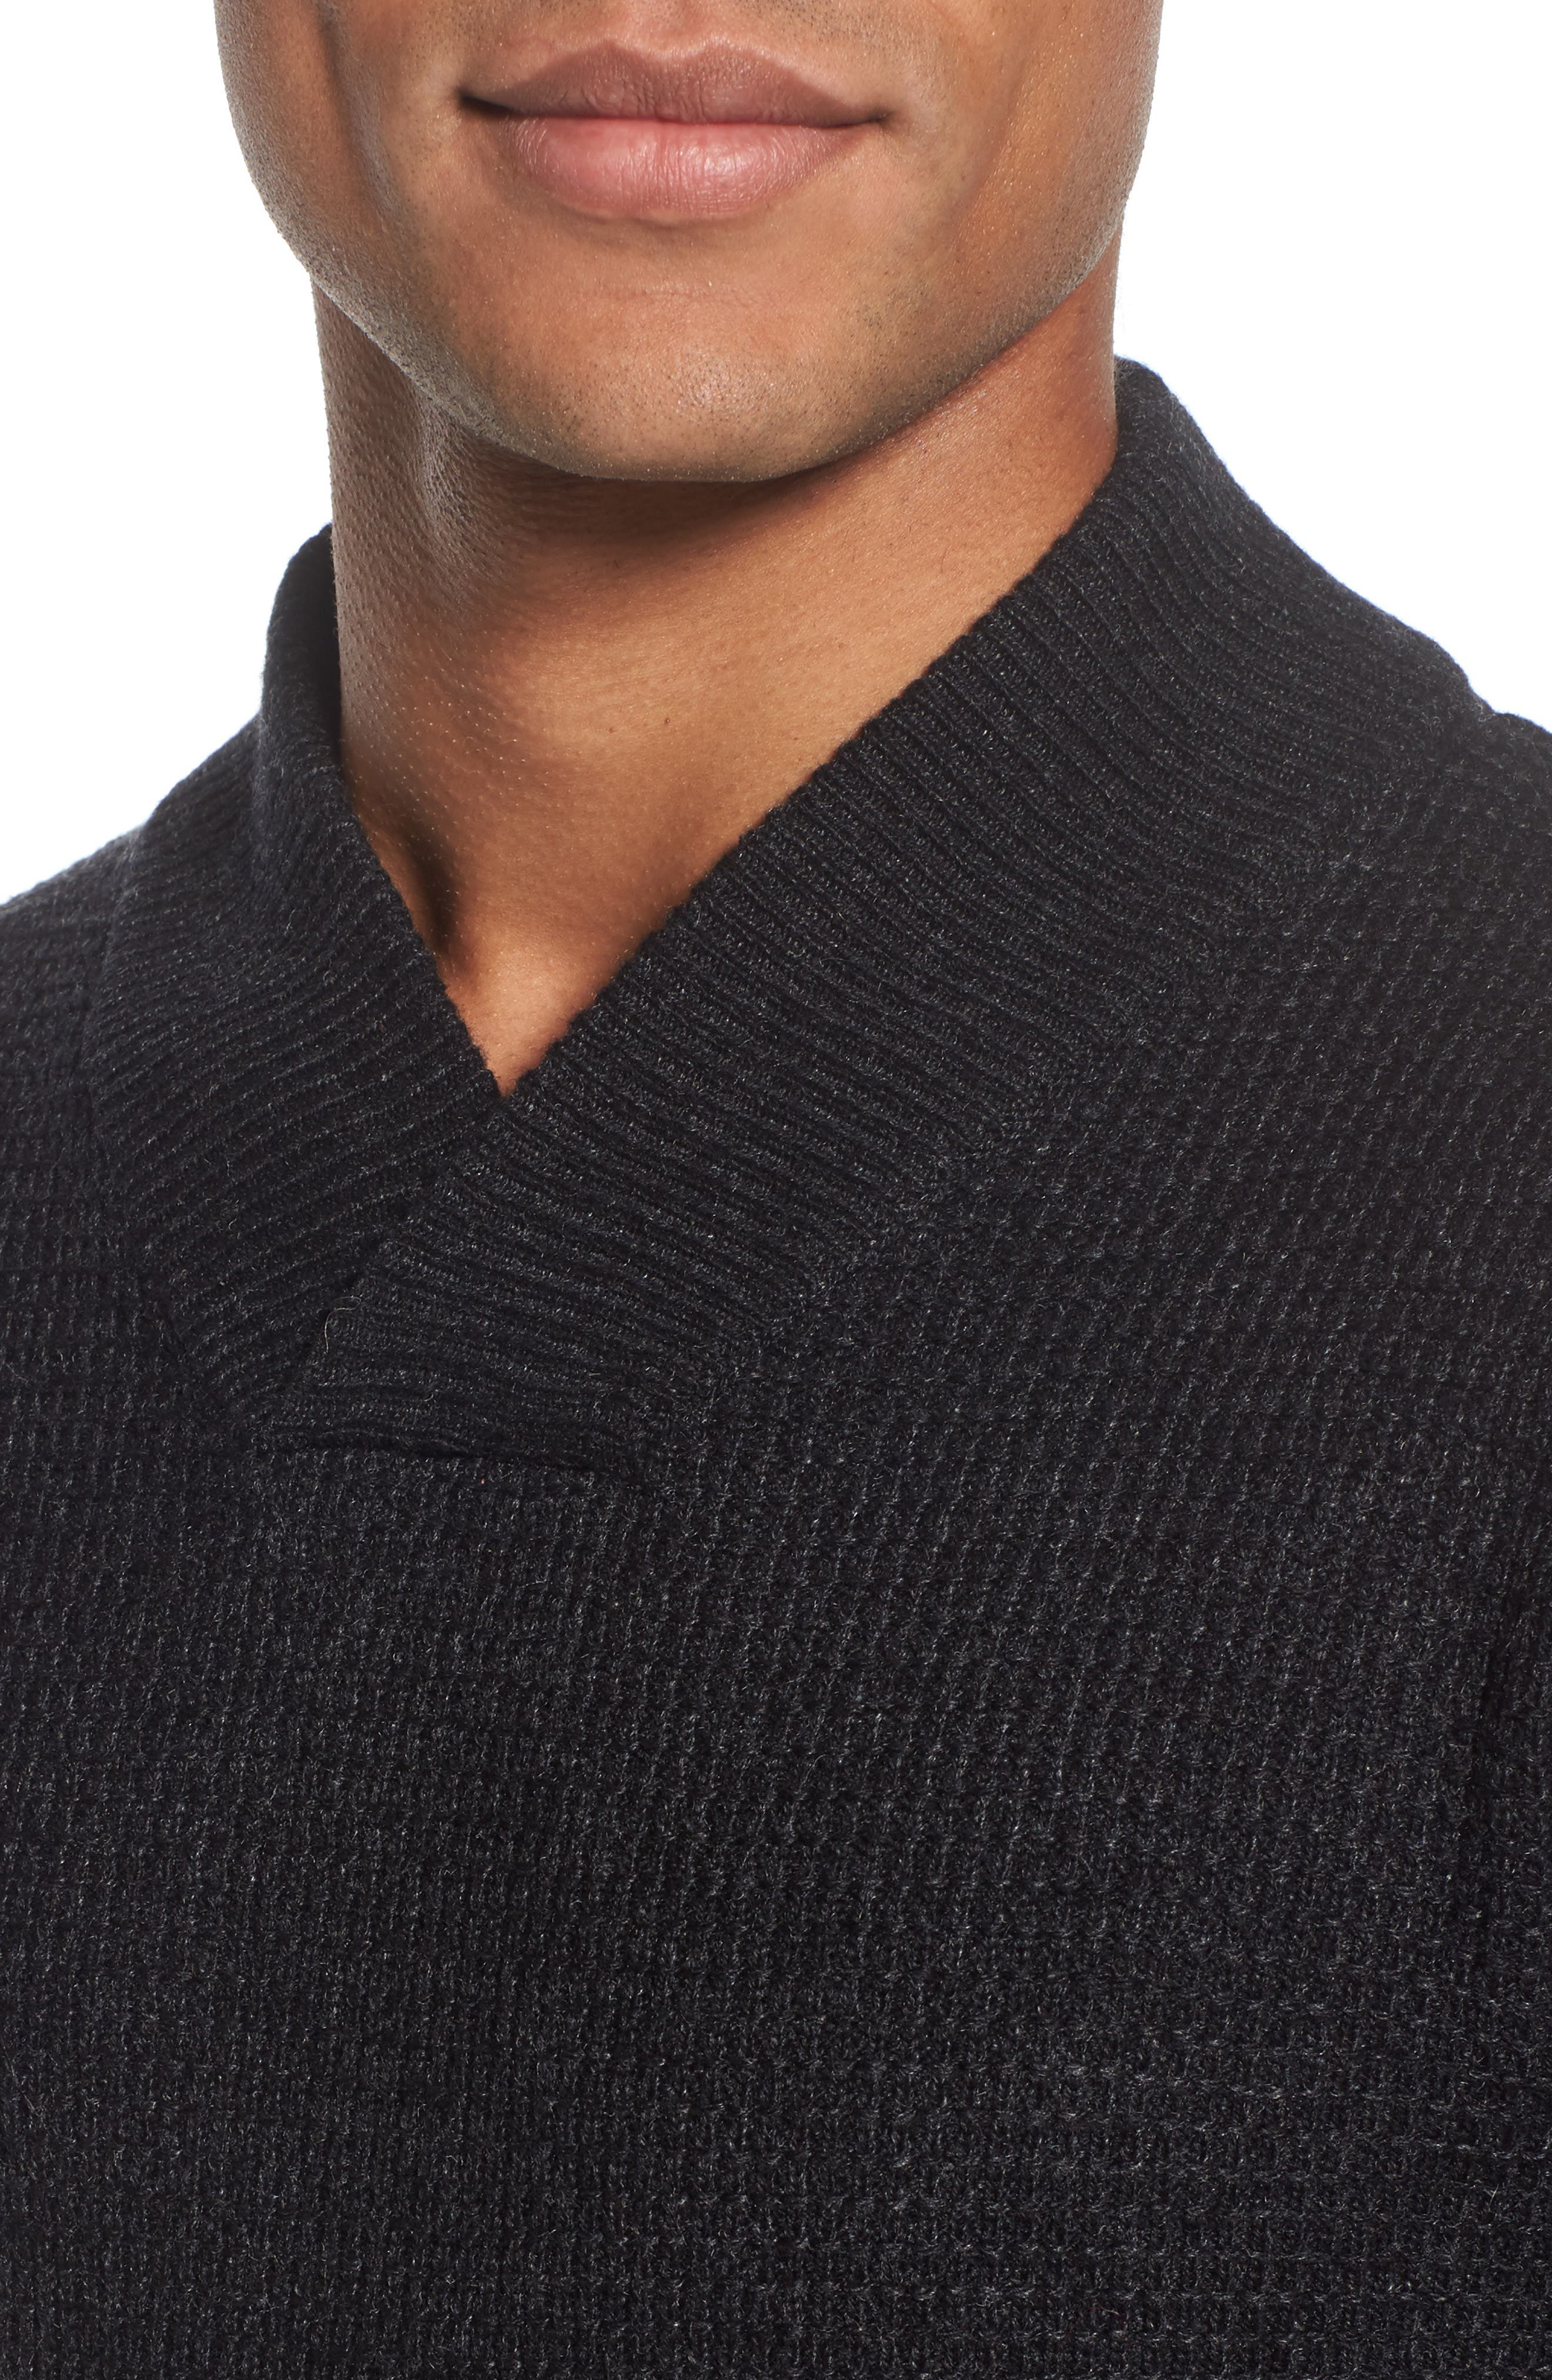 Waffle Knit Thermal Wool Blend Pullover,                             Alternate thumbnail 4, color,                             BLACK